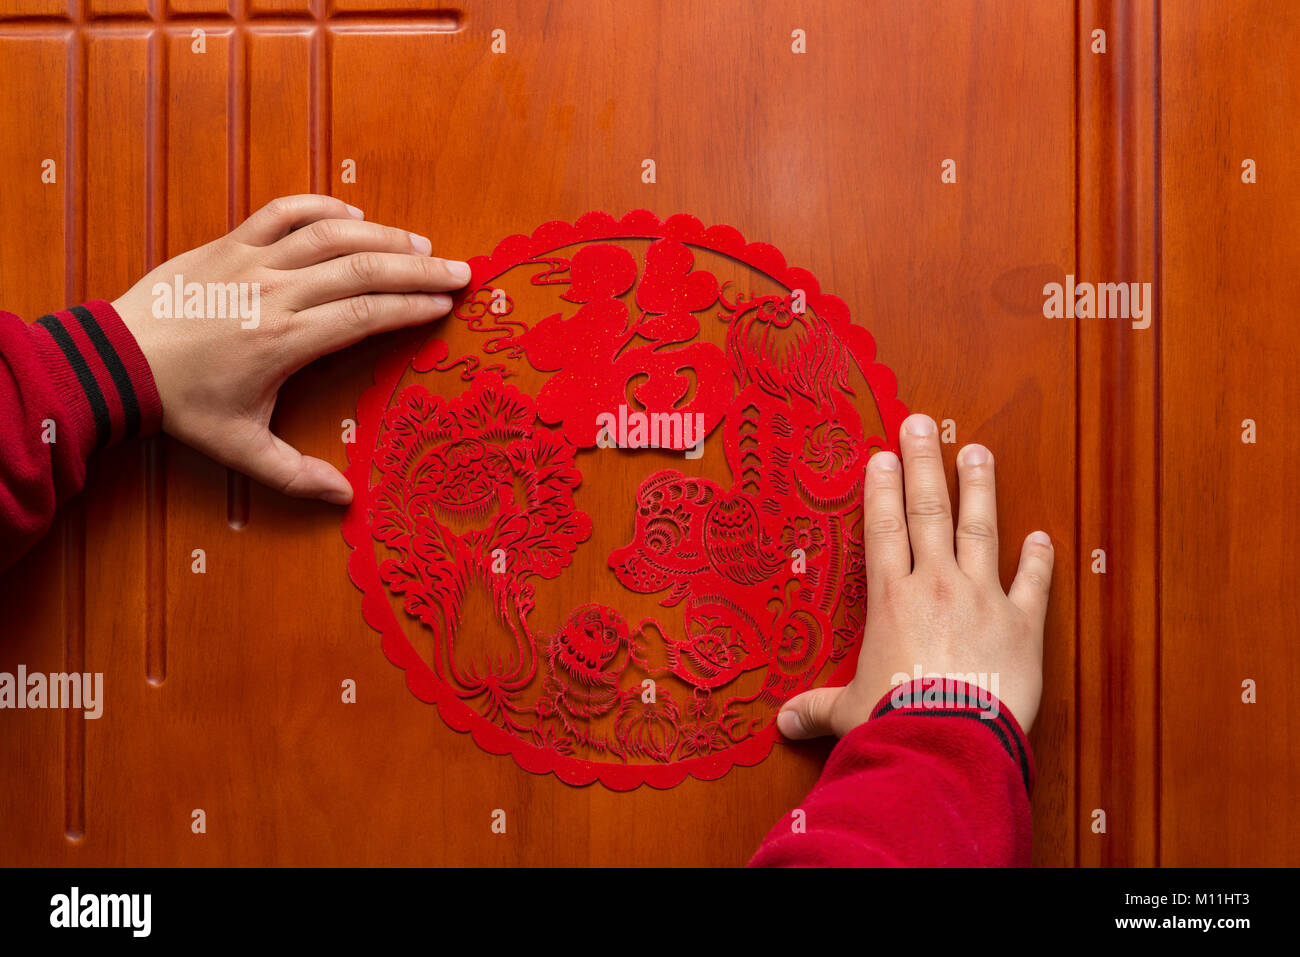 man sticking a Chinese New Year of the Dog 2018 to a door the Chinese means fortune and family - Stock Image